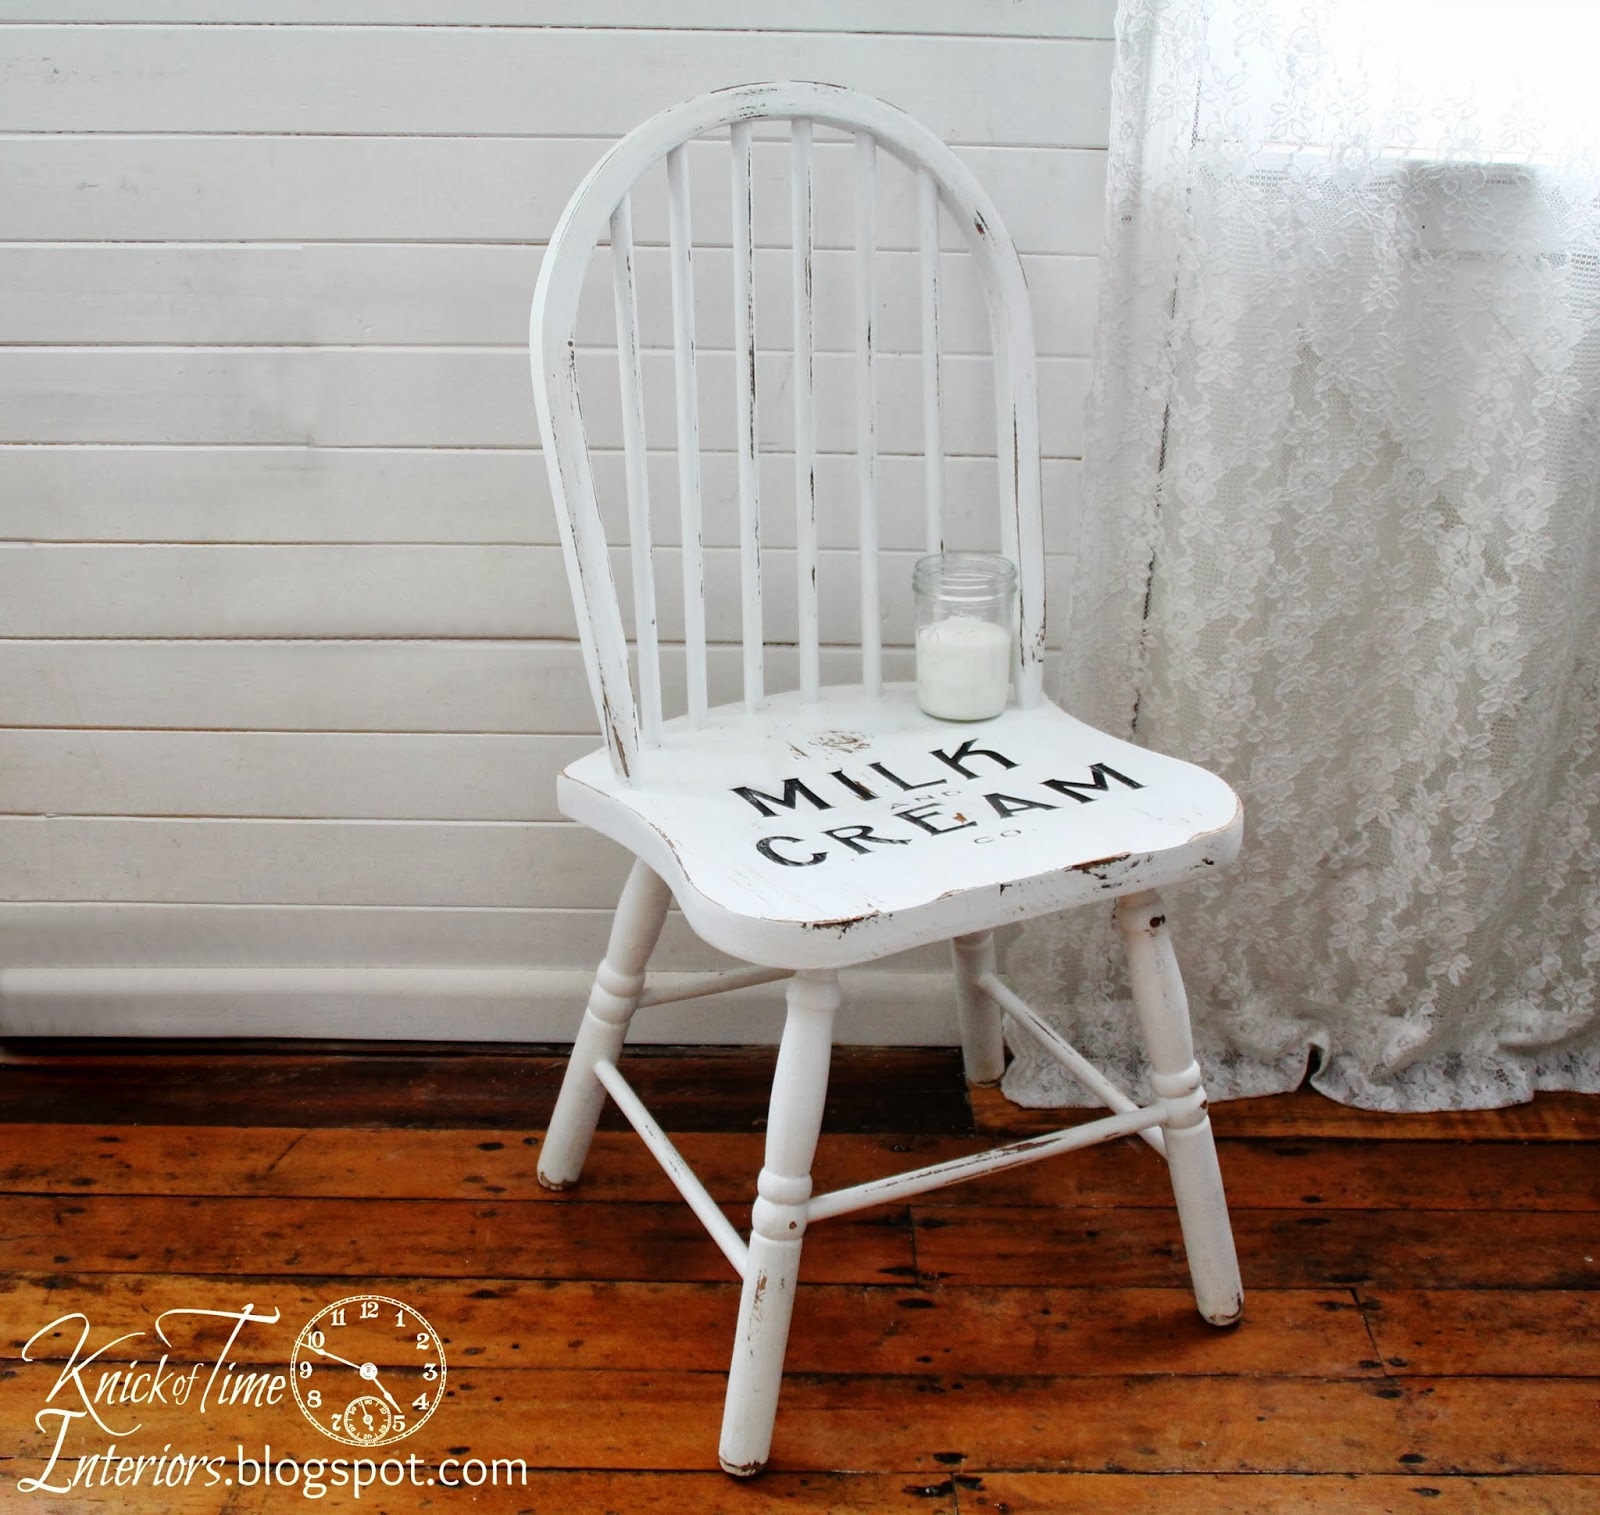 Charmant Upcycled Vintage White Chair Milk And Cream Company Via Knick Of Time